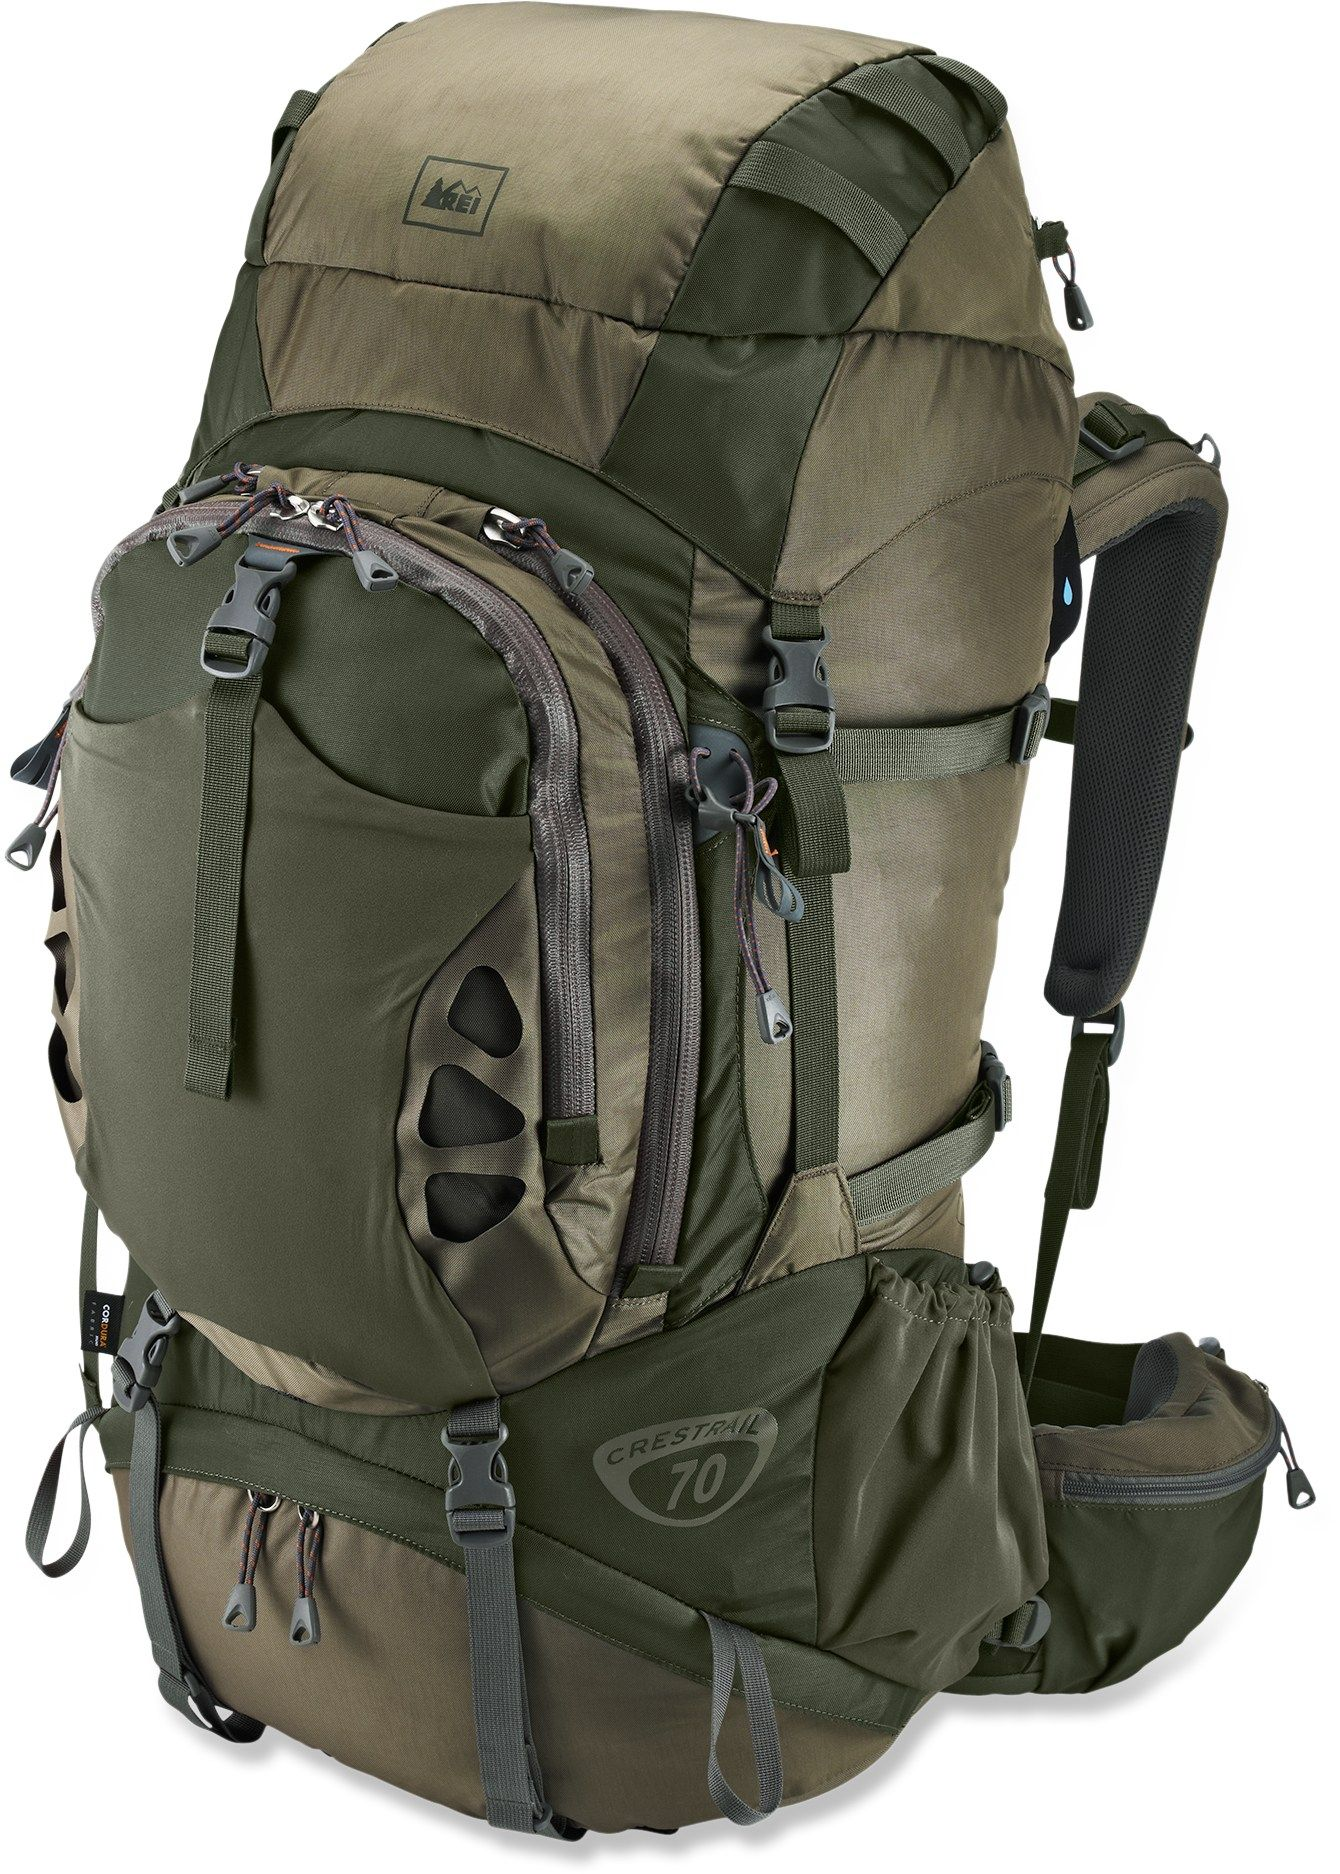 REI Crestrail 70 Pack   roll   Pinterest   Mochilas, Morral y Campismo